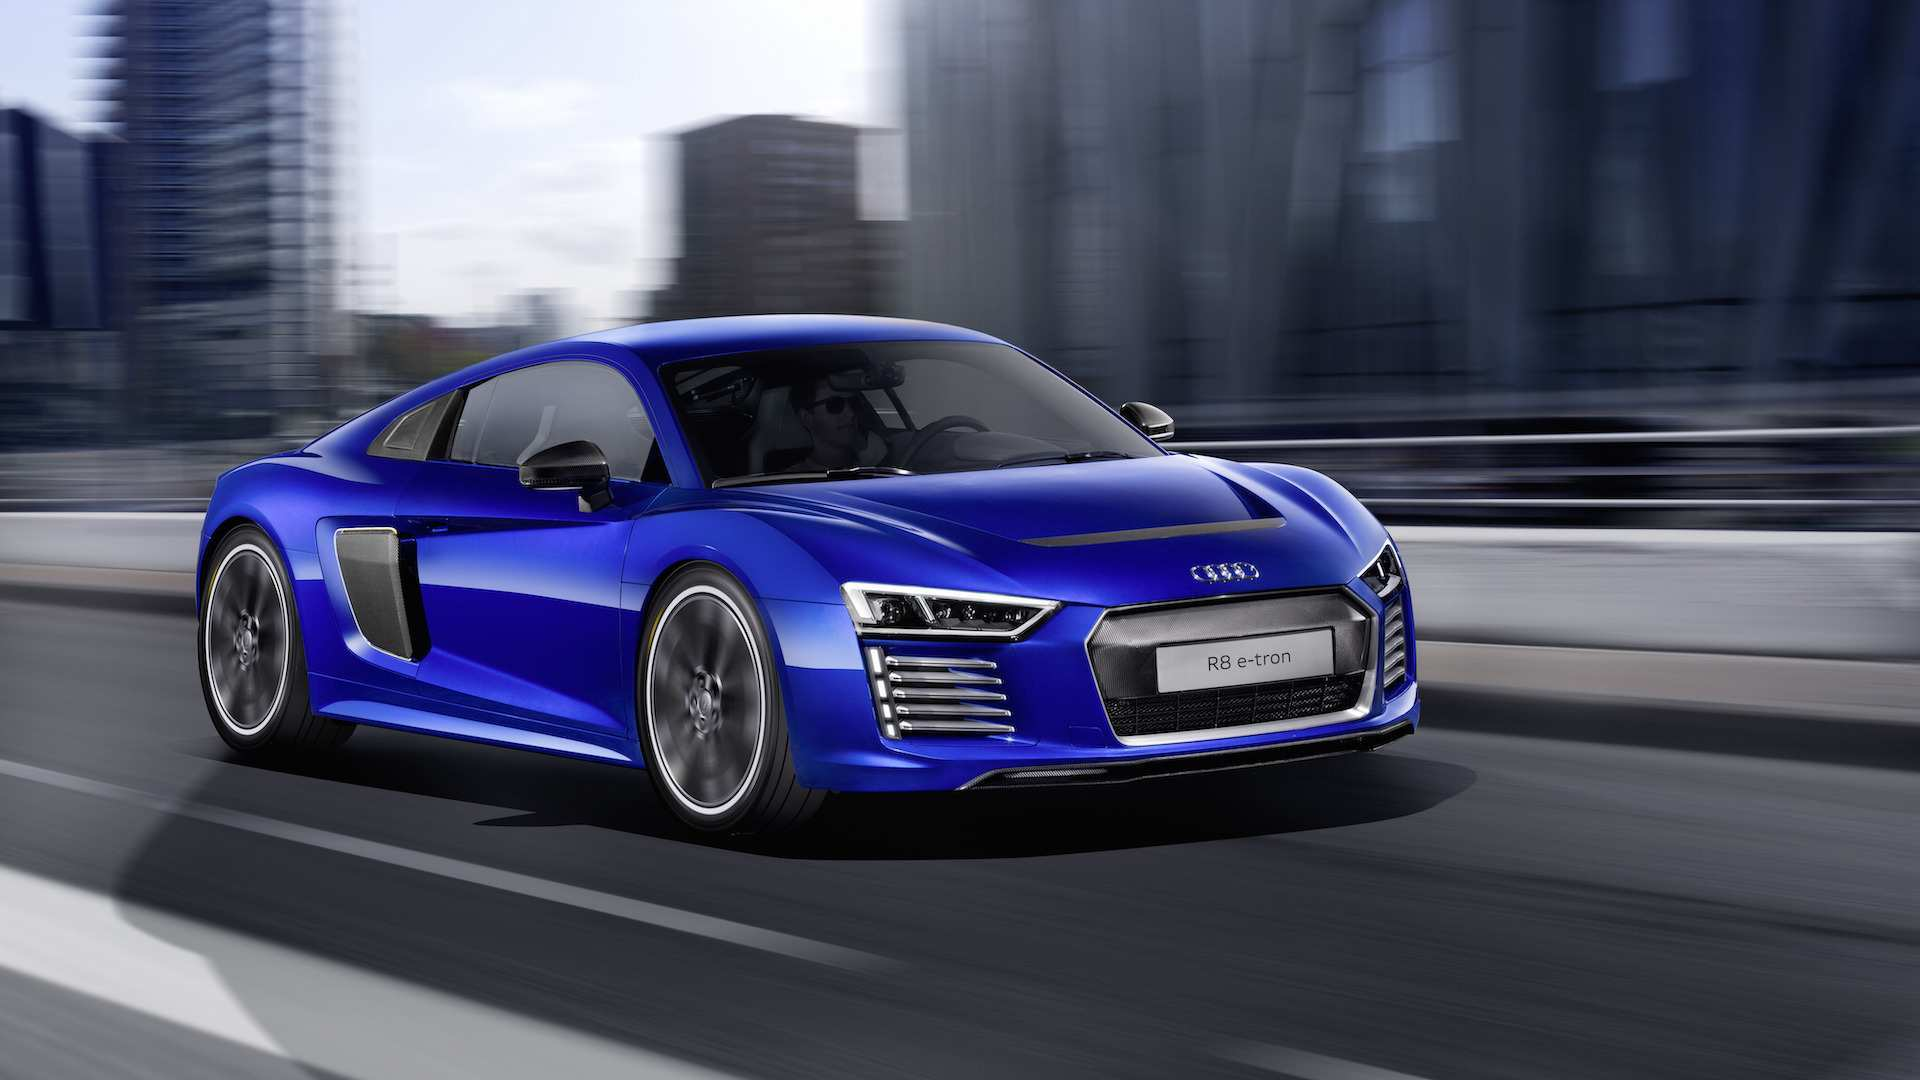 26 Gallery of 2020 Audi R8 E Tron First Drive for 2020 Audi R8 E Tron